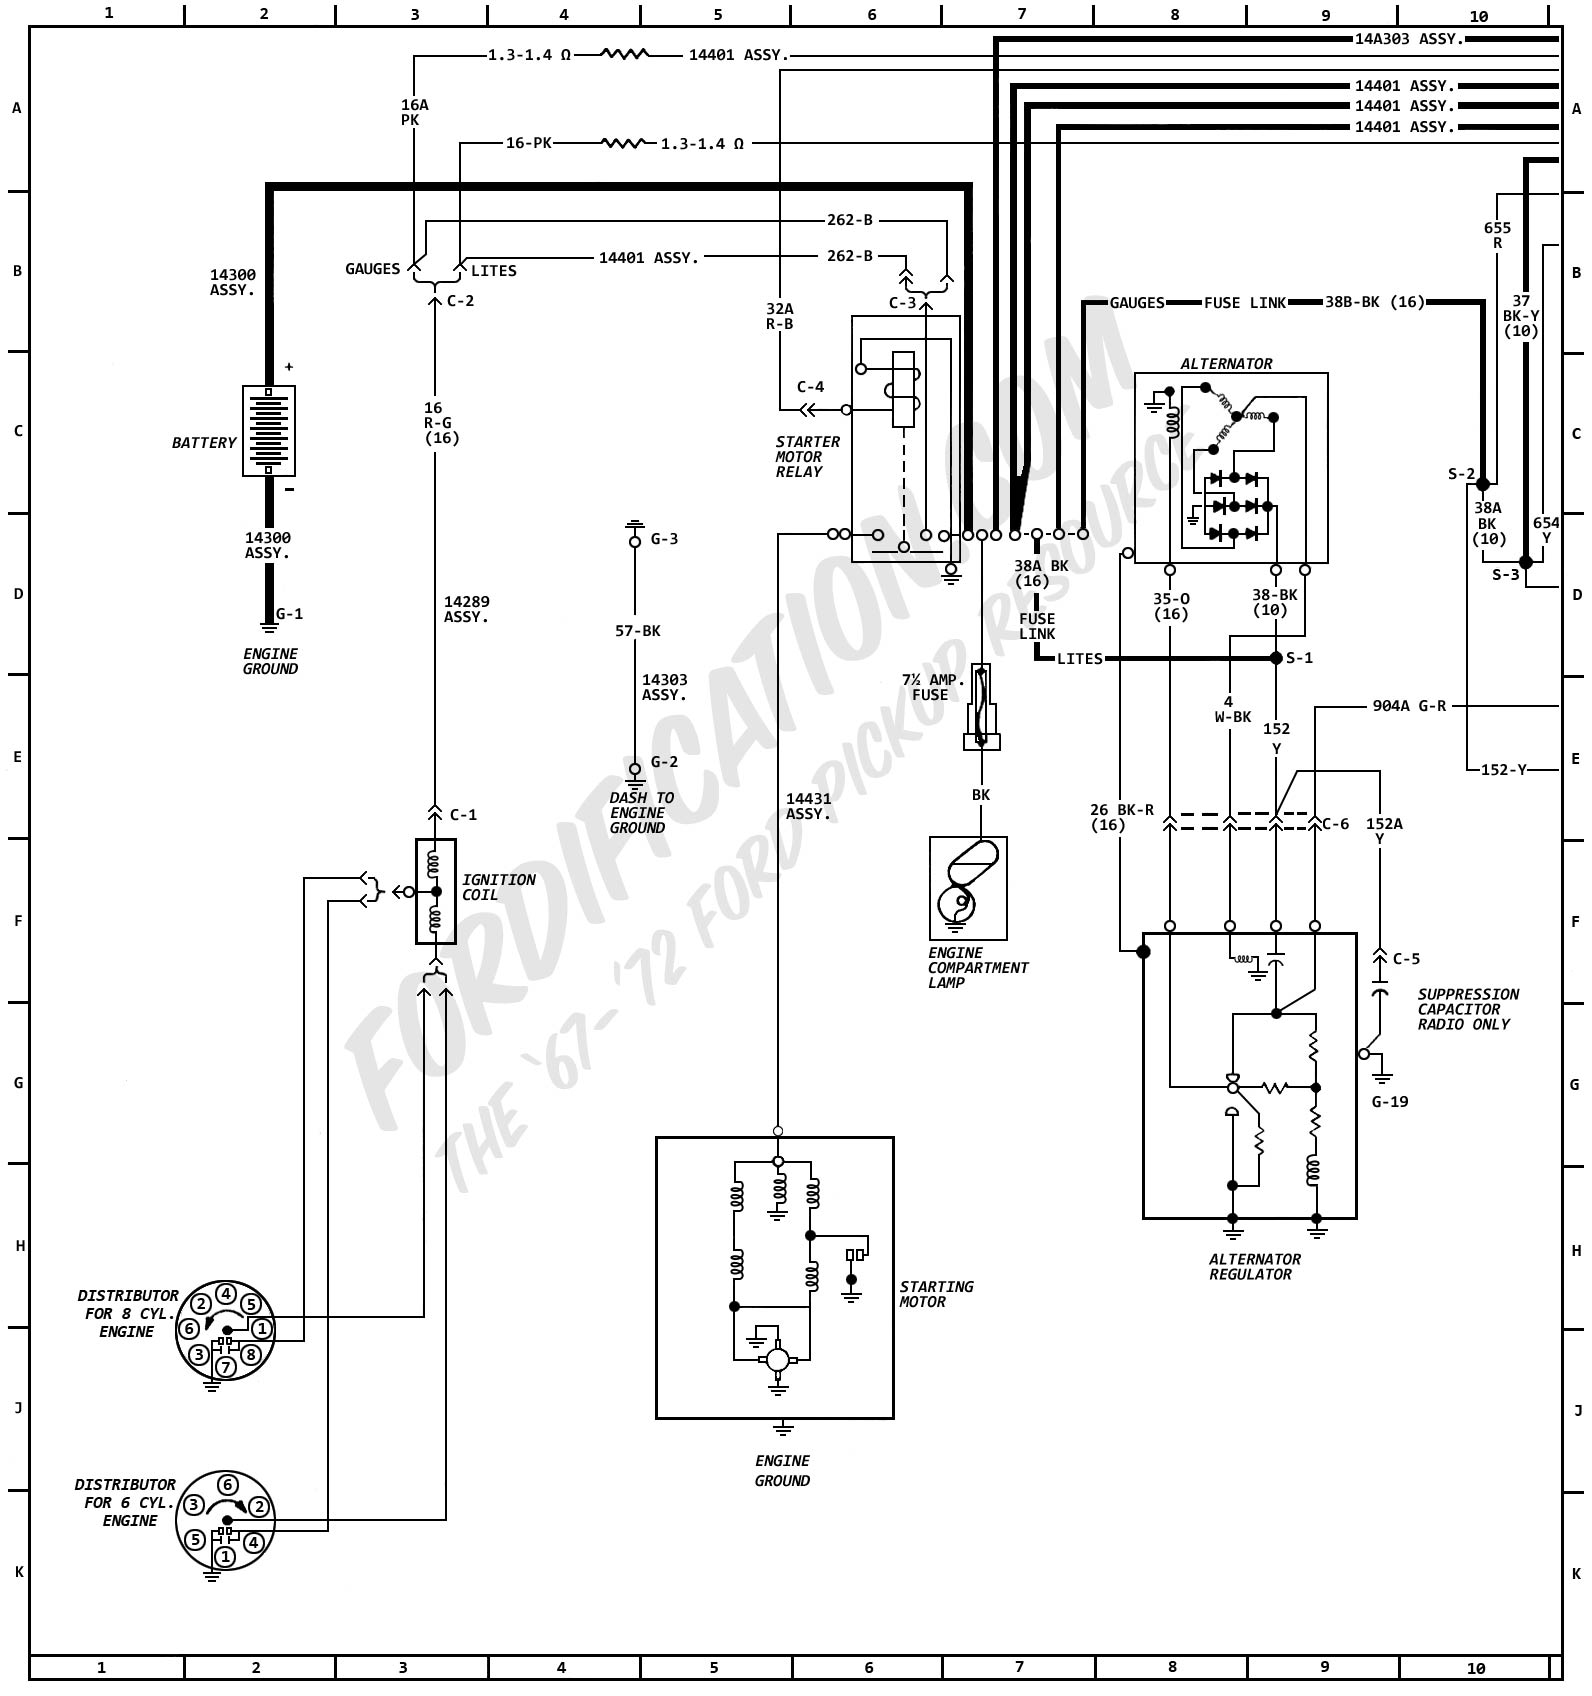 1972MasterWiring_01 1972 ford truck wiring diagrams fordification com electrical wiring diagram ford courier at suagrazia.org